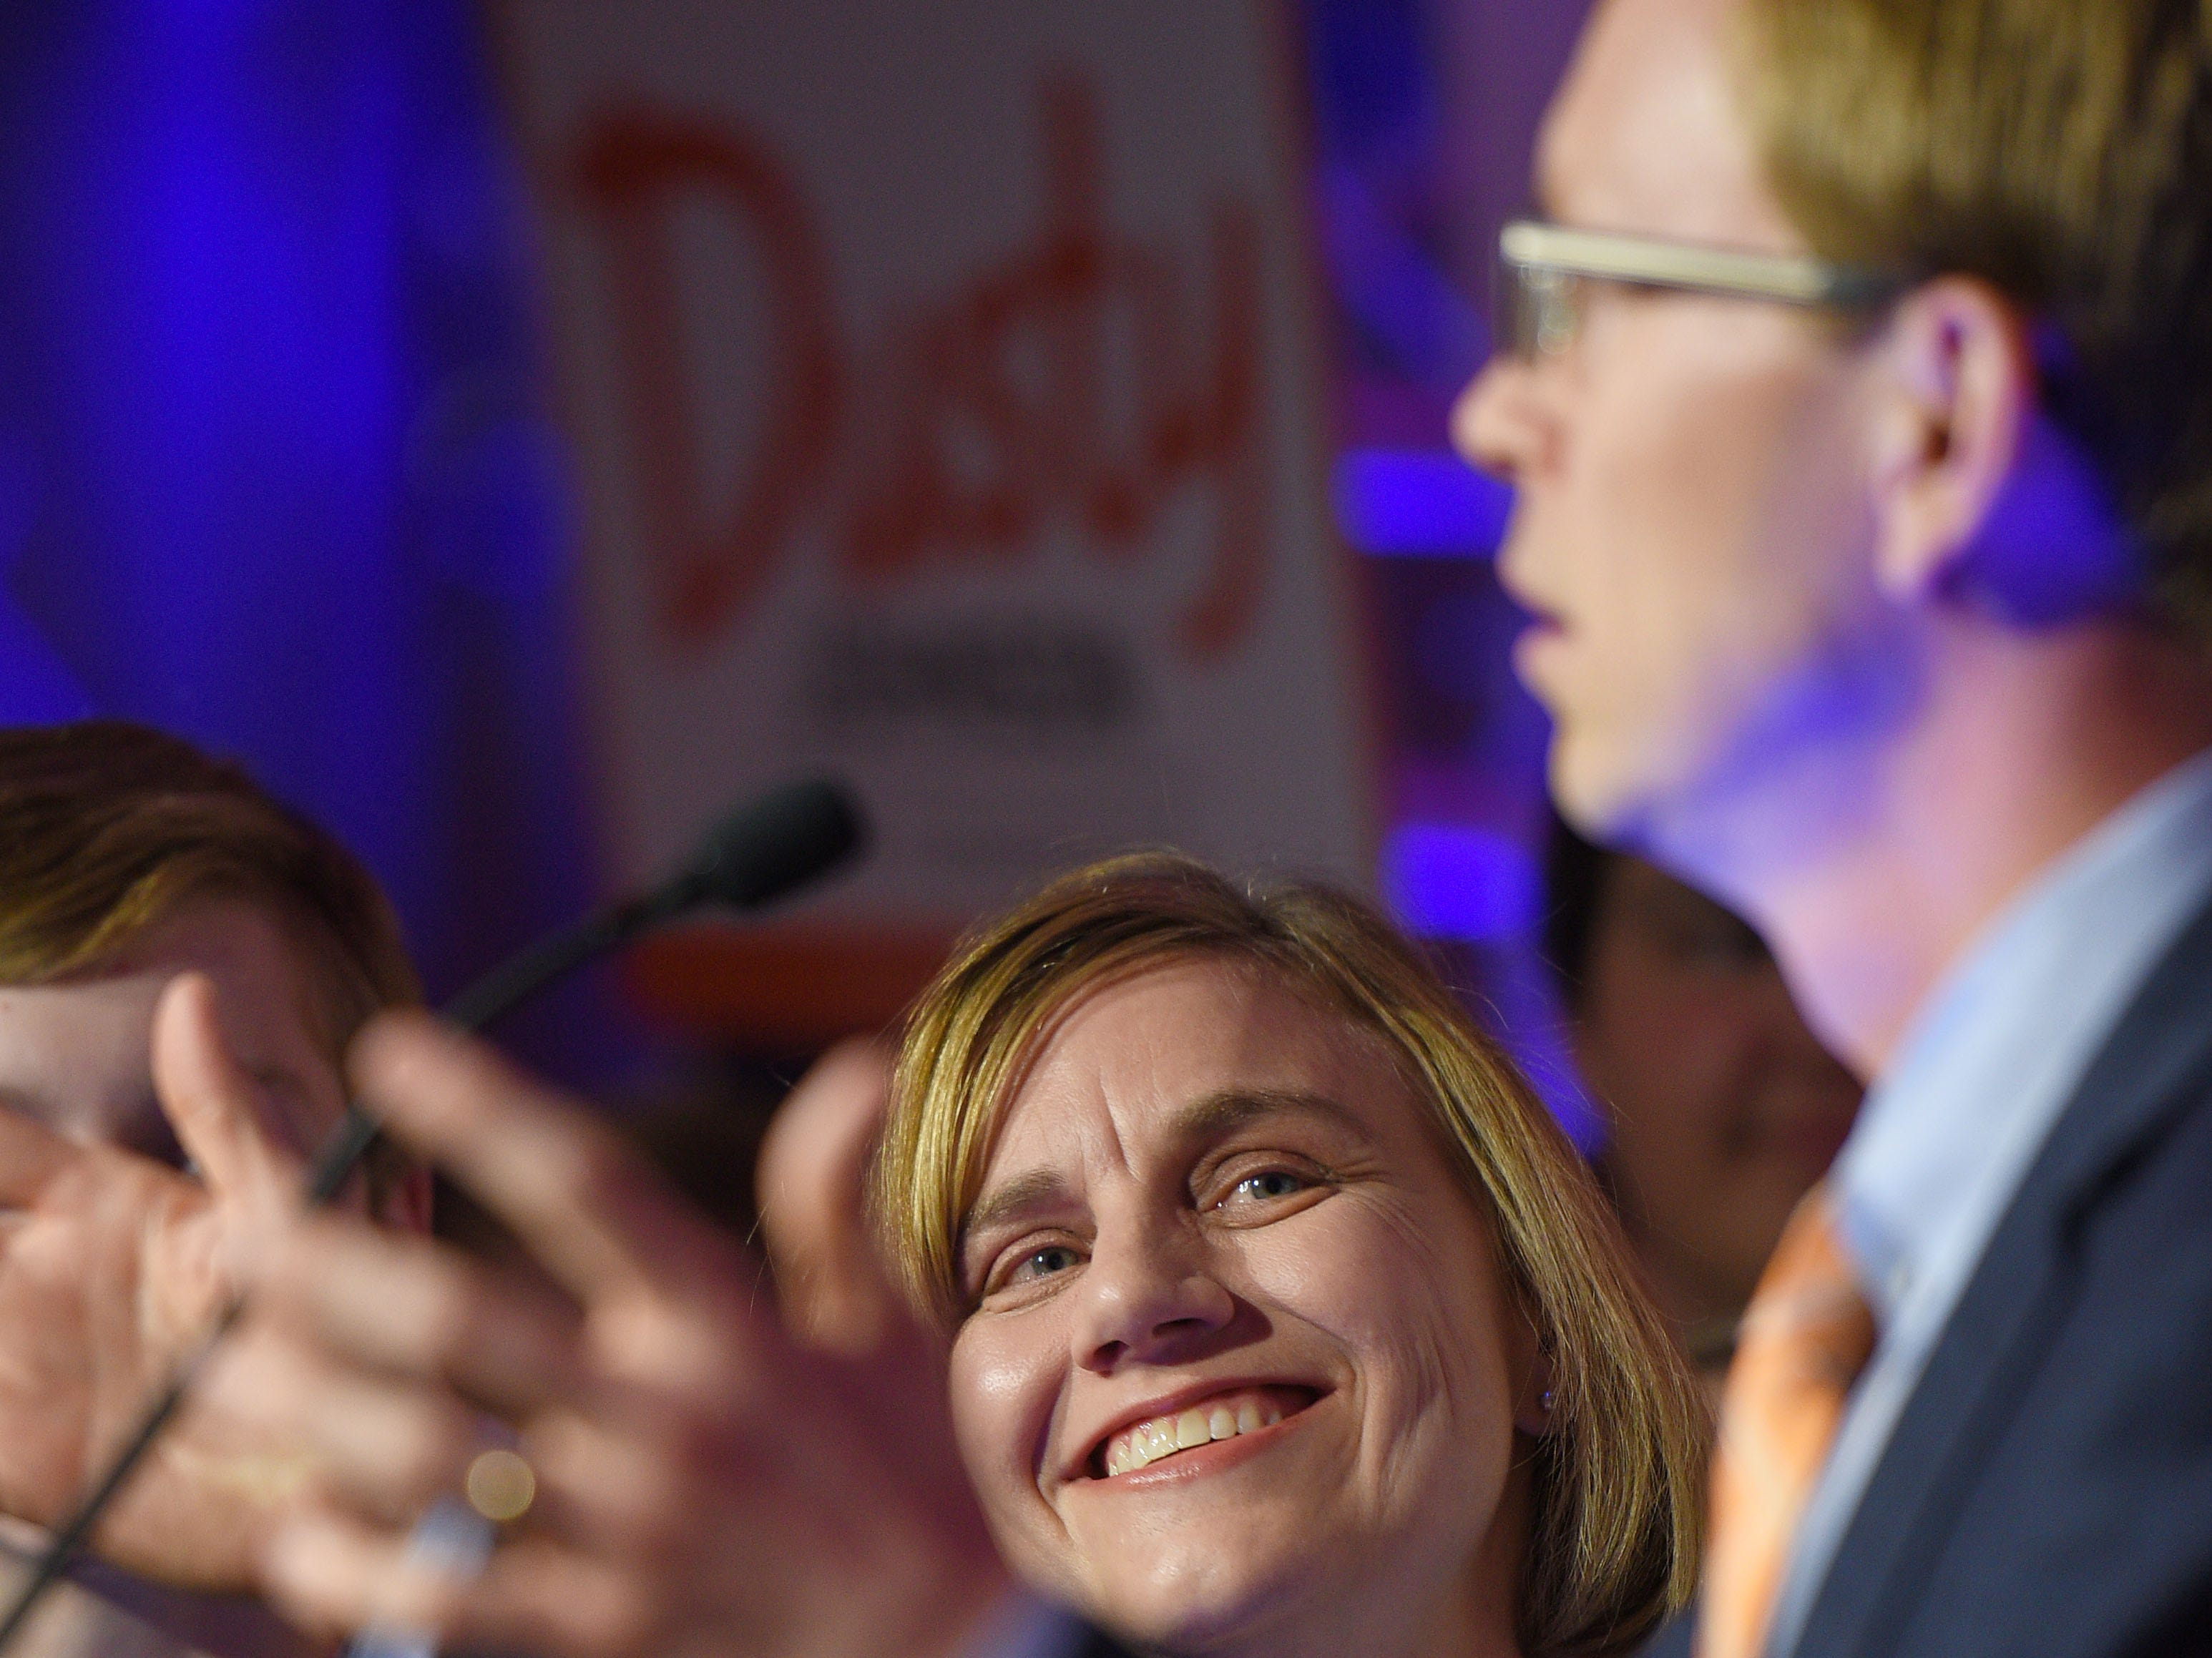 Jacquelyn Johnson looks up at her husband Dusty Johnson while he speaks to supporters after winning South Dakota's lone U.S. House seat after results are announced Tuesday, Nov. 6, at the Hilton Garden Inn in Sioux Falls.